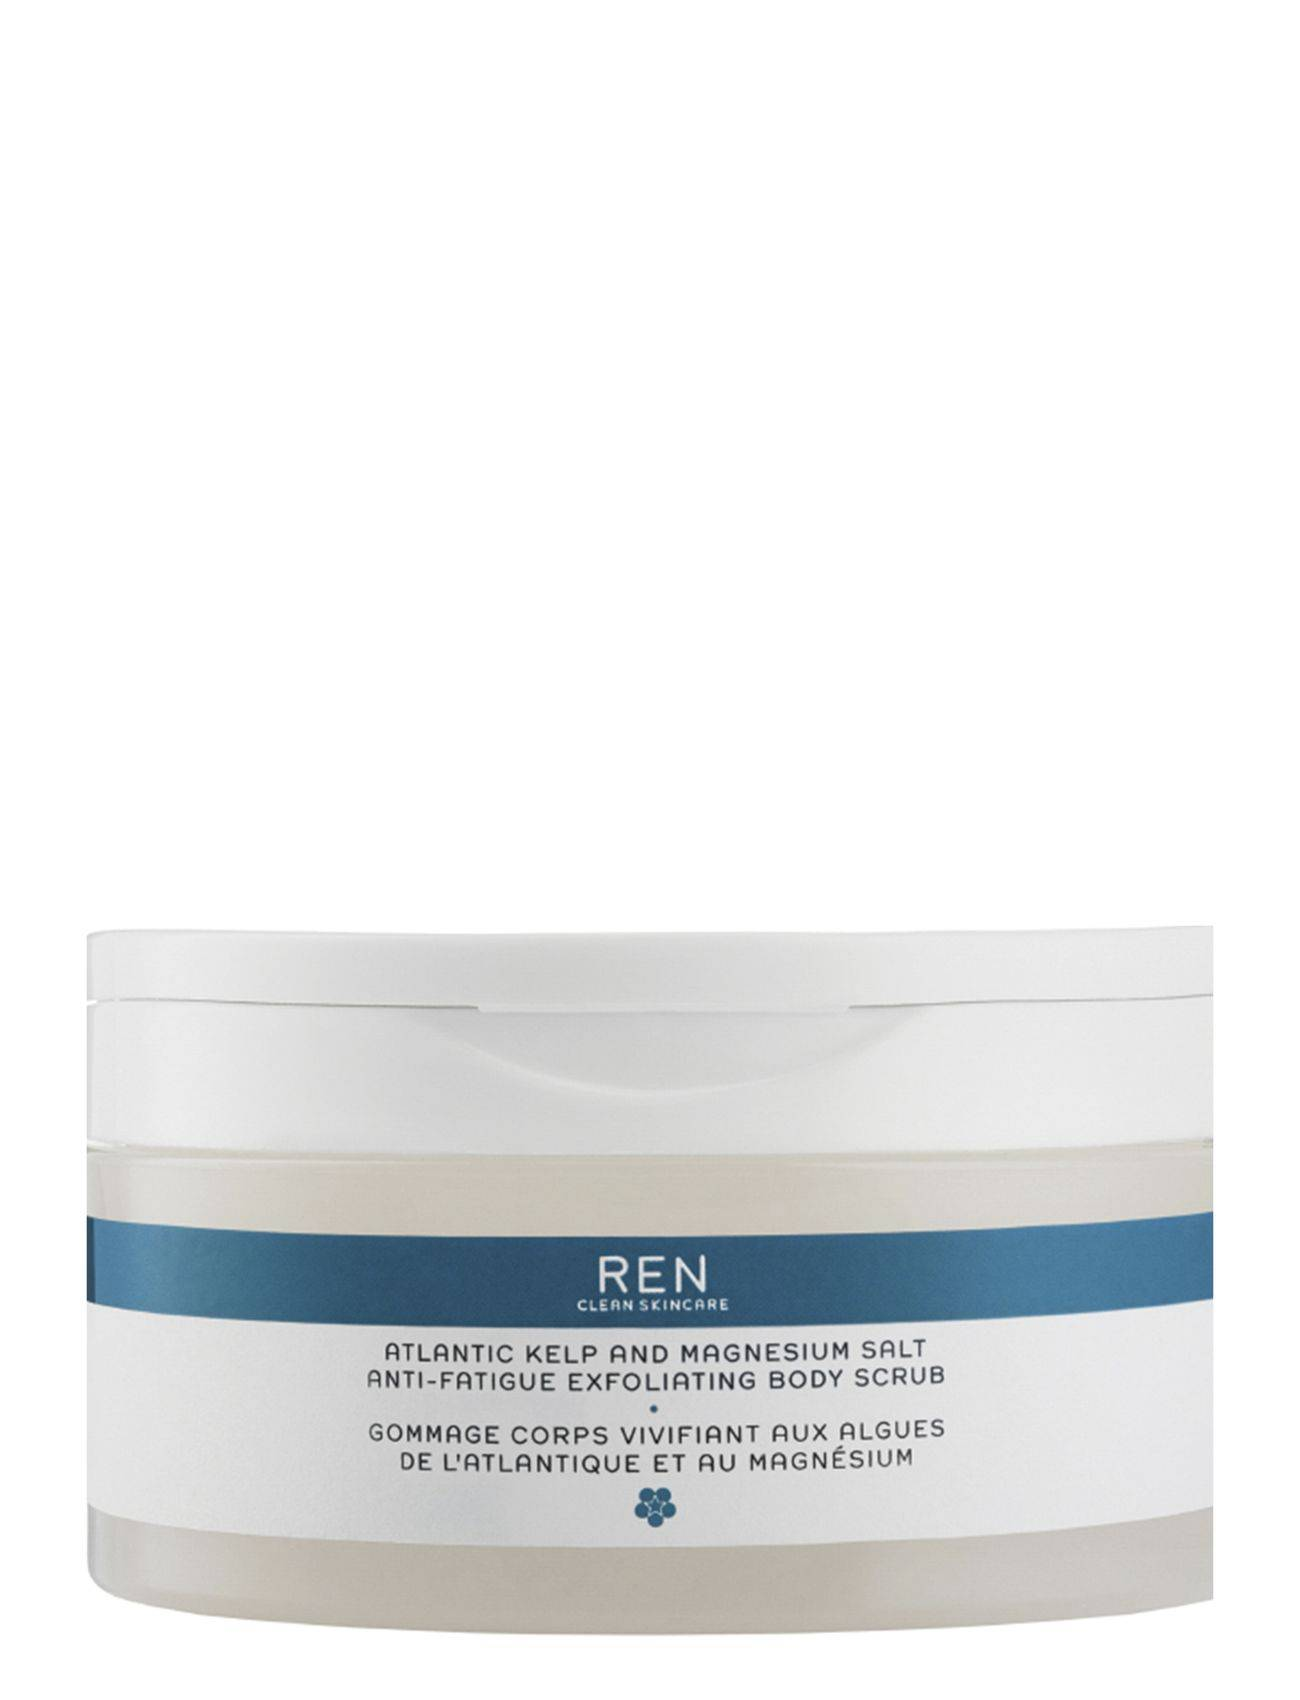 REN Atlantic Kelp And Magnesium Body Scrub 150 Ml